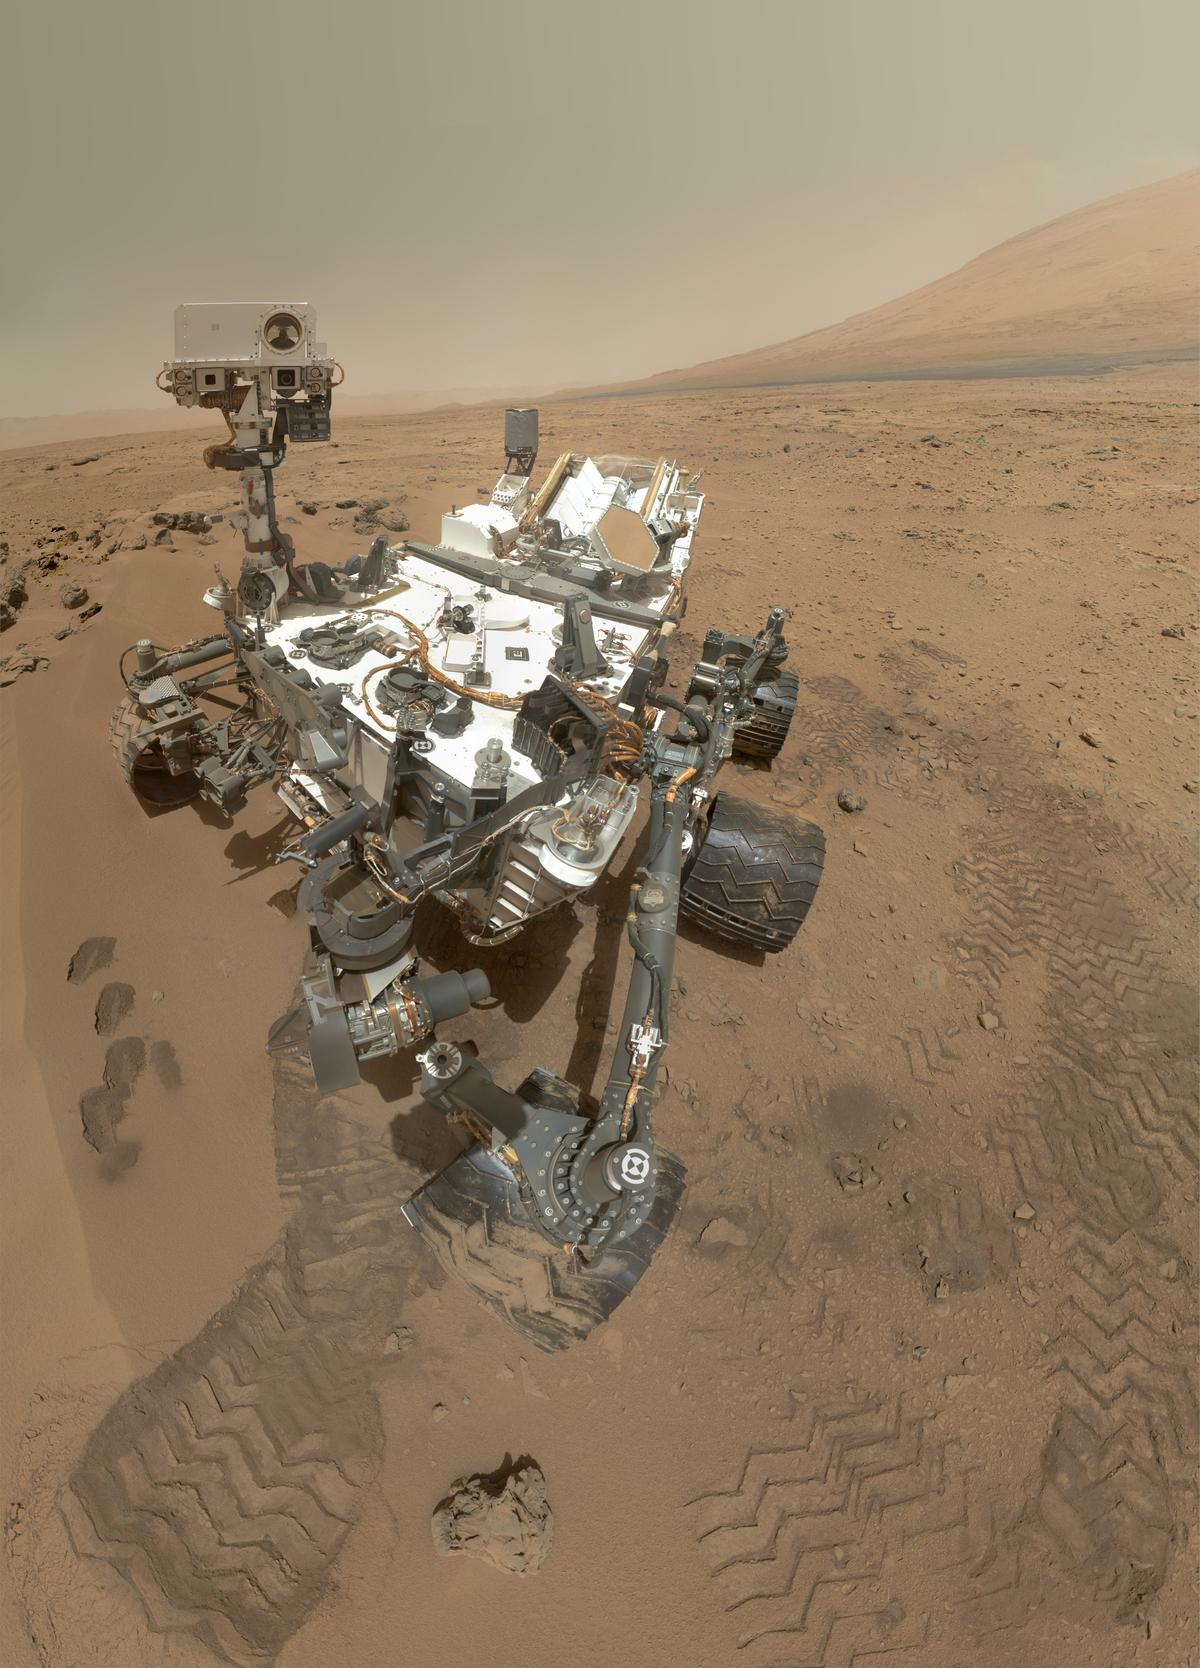 Self-portrait of the Curiosity rover (Image: NASA/JPL-Caltech/MSSS)